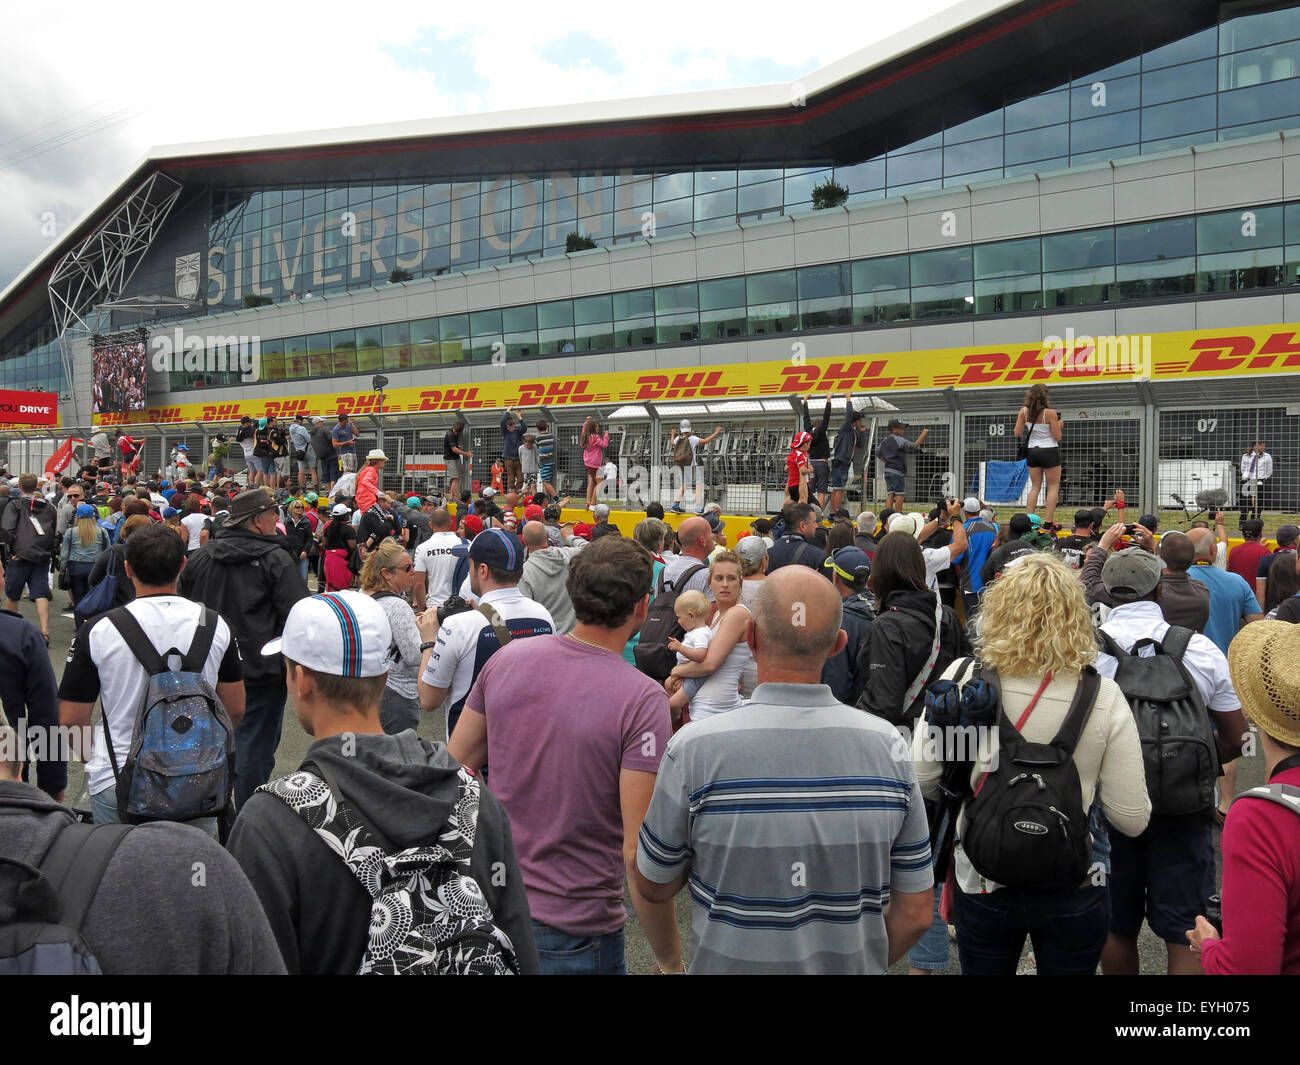 Formula1,formula,One,1,race,racing,circuit,car,motor,sport,motorsport,fan,fanatics,visitors,punters,road,track,side,trackside,podium,win,winner,winners,GB,English,sporting,event,calender,building,packed,full,ticketed,drive,driver,automobile,BTCC,fans,Formula One,Great Britain,crowds on track,GoTonySmith,wing,paddock,complex,2011,architecture,east,west,midlands,classic,facilities,home,of,motorracing,motoracing,venue,campers,northamptonshire,northants,officials,DHL,Buy Pictures of,Buy Images Of,Home Of British,Home,Of,British,Motor,Racing